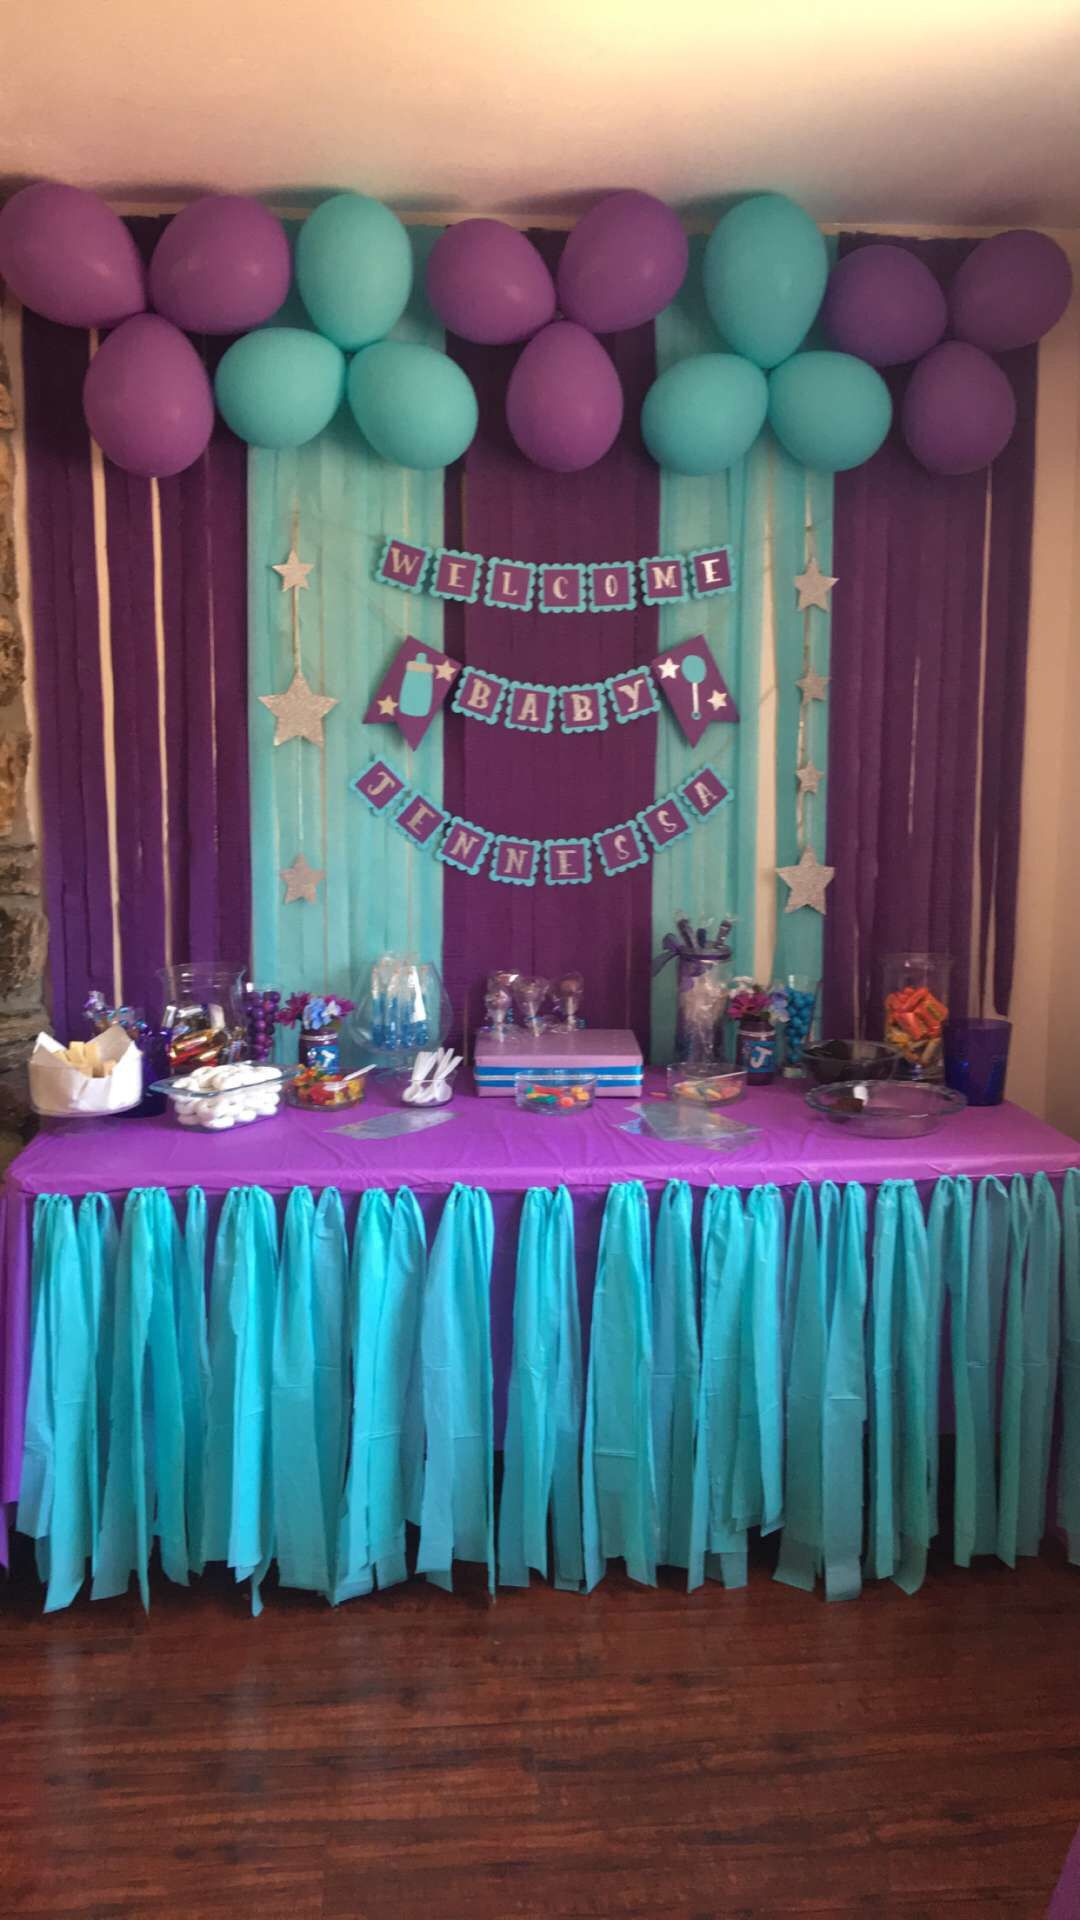 Baby shower banner purple turquoise ideas fiestas - Baby shower party ideen ...